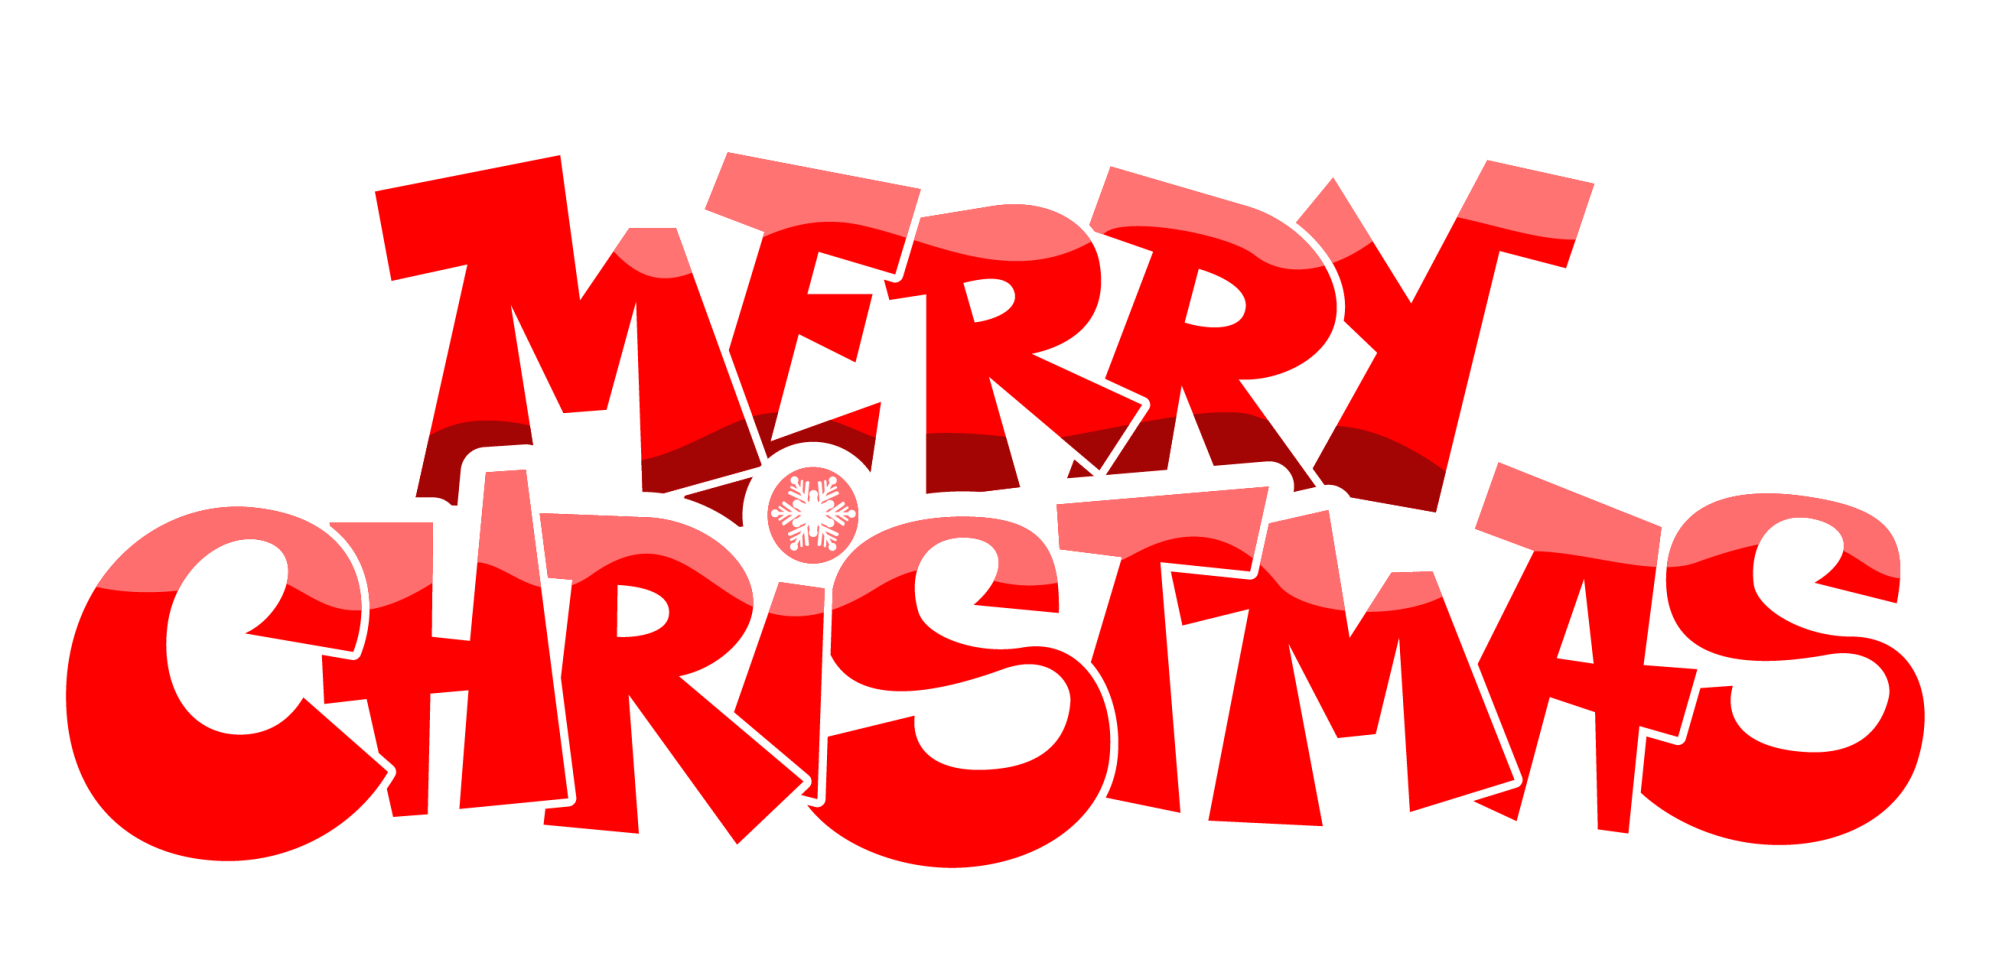 hight resolution of merry christmas words free merry christmas clip art clipart